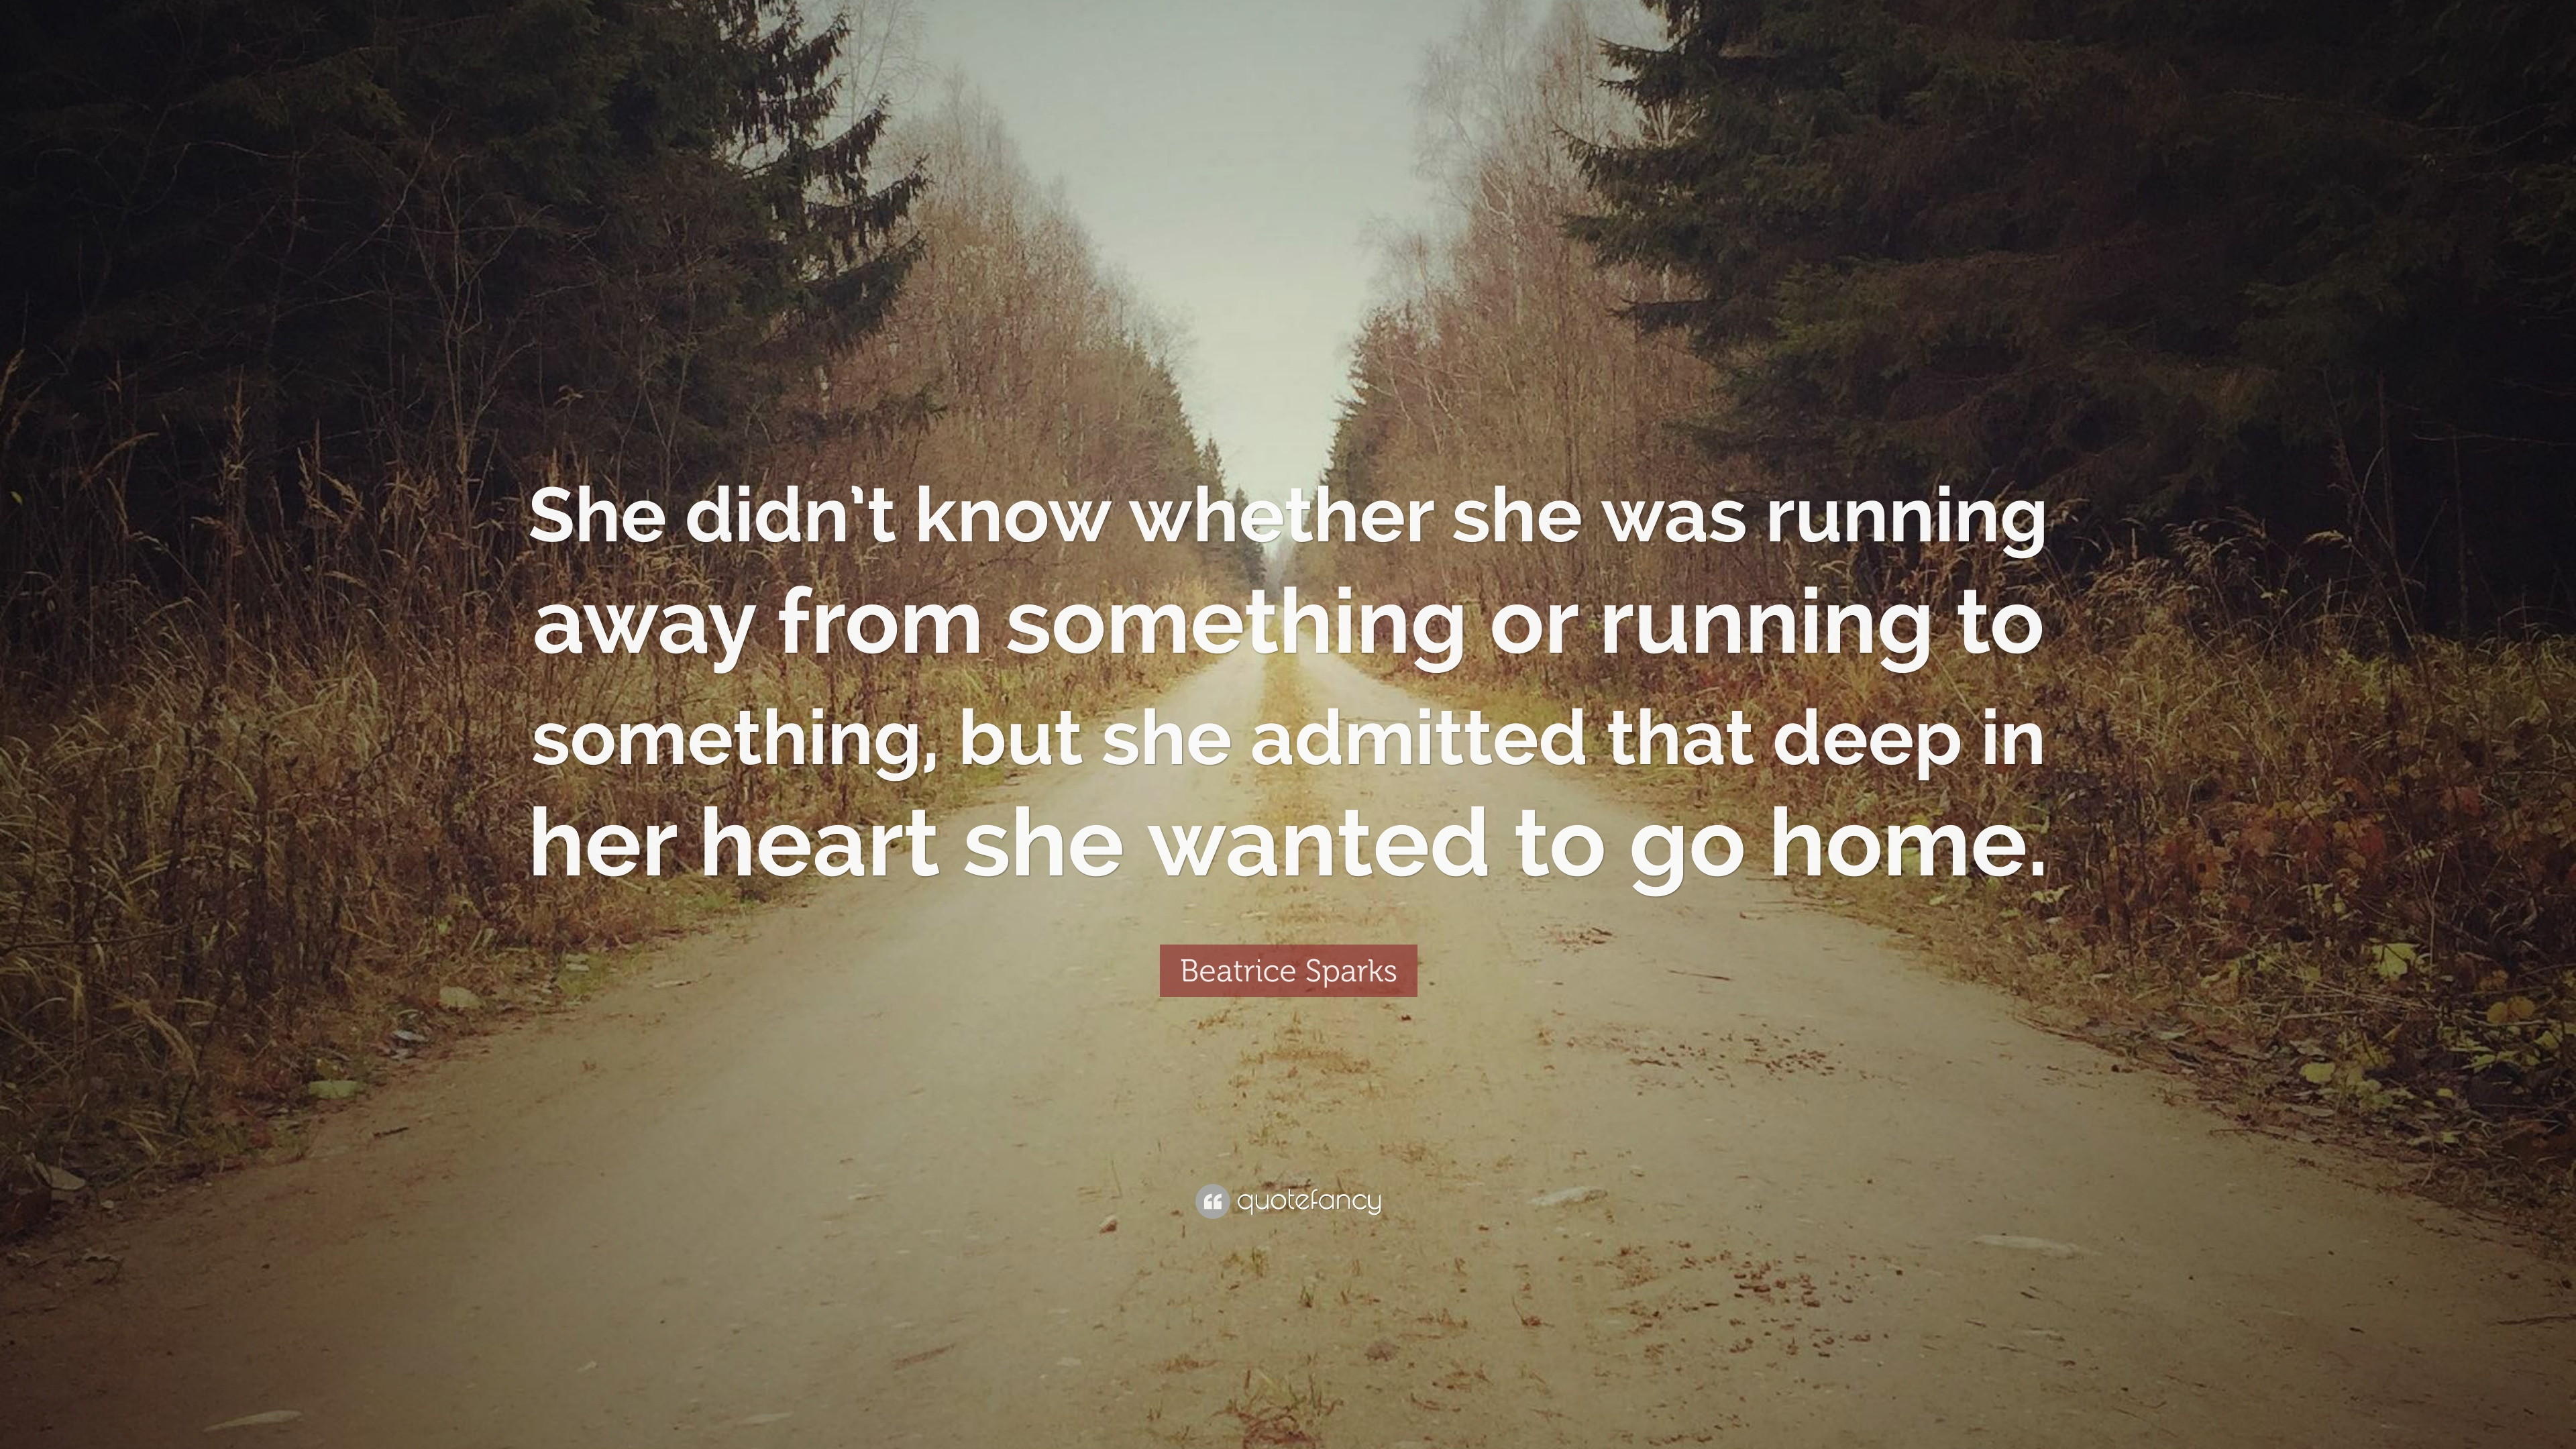 Beatrice Sparks Quote She didnt know whether she was running